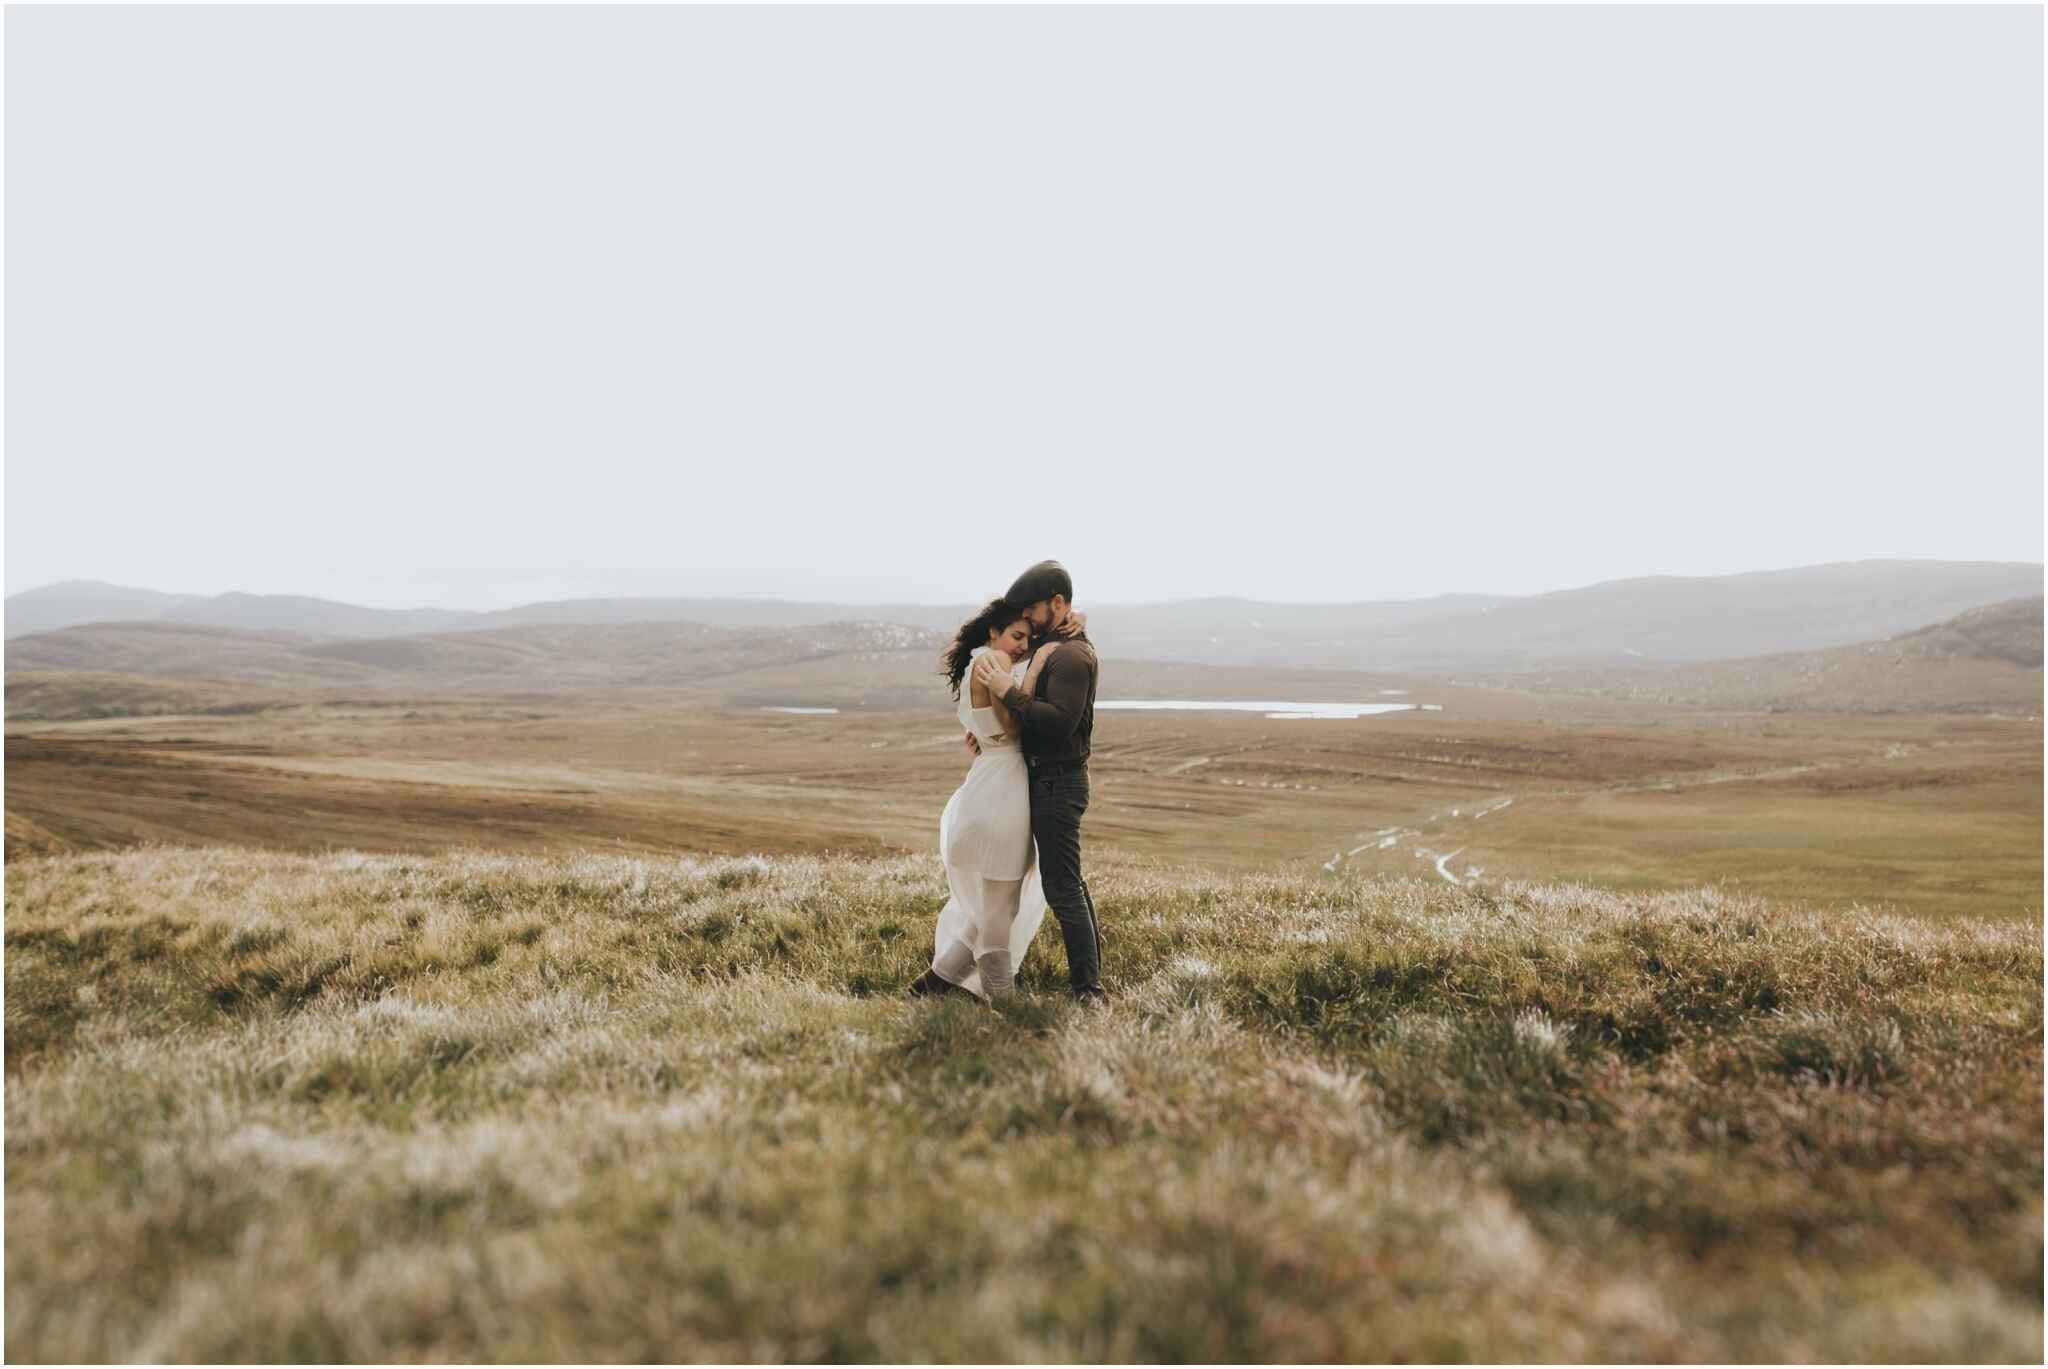 Rachel + David - Hiking Elopement in Muckish Mountain and Poisoned Glen, Donegal 11